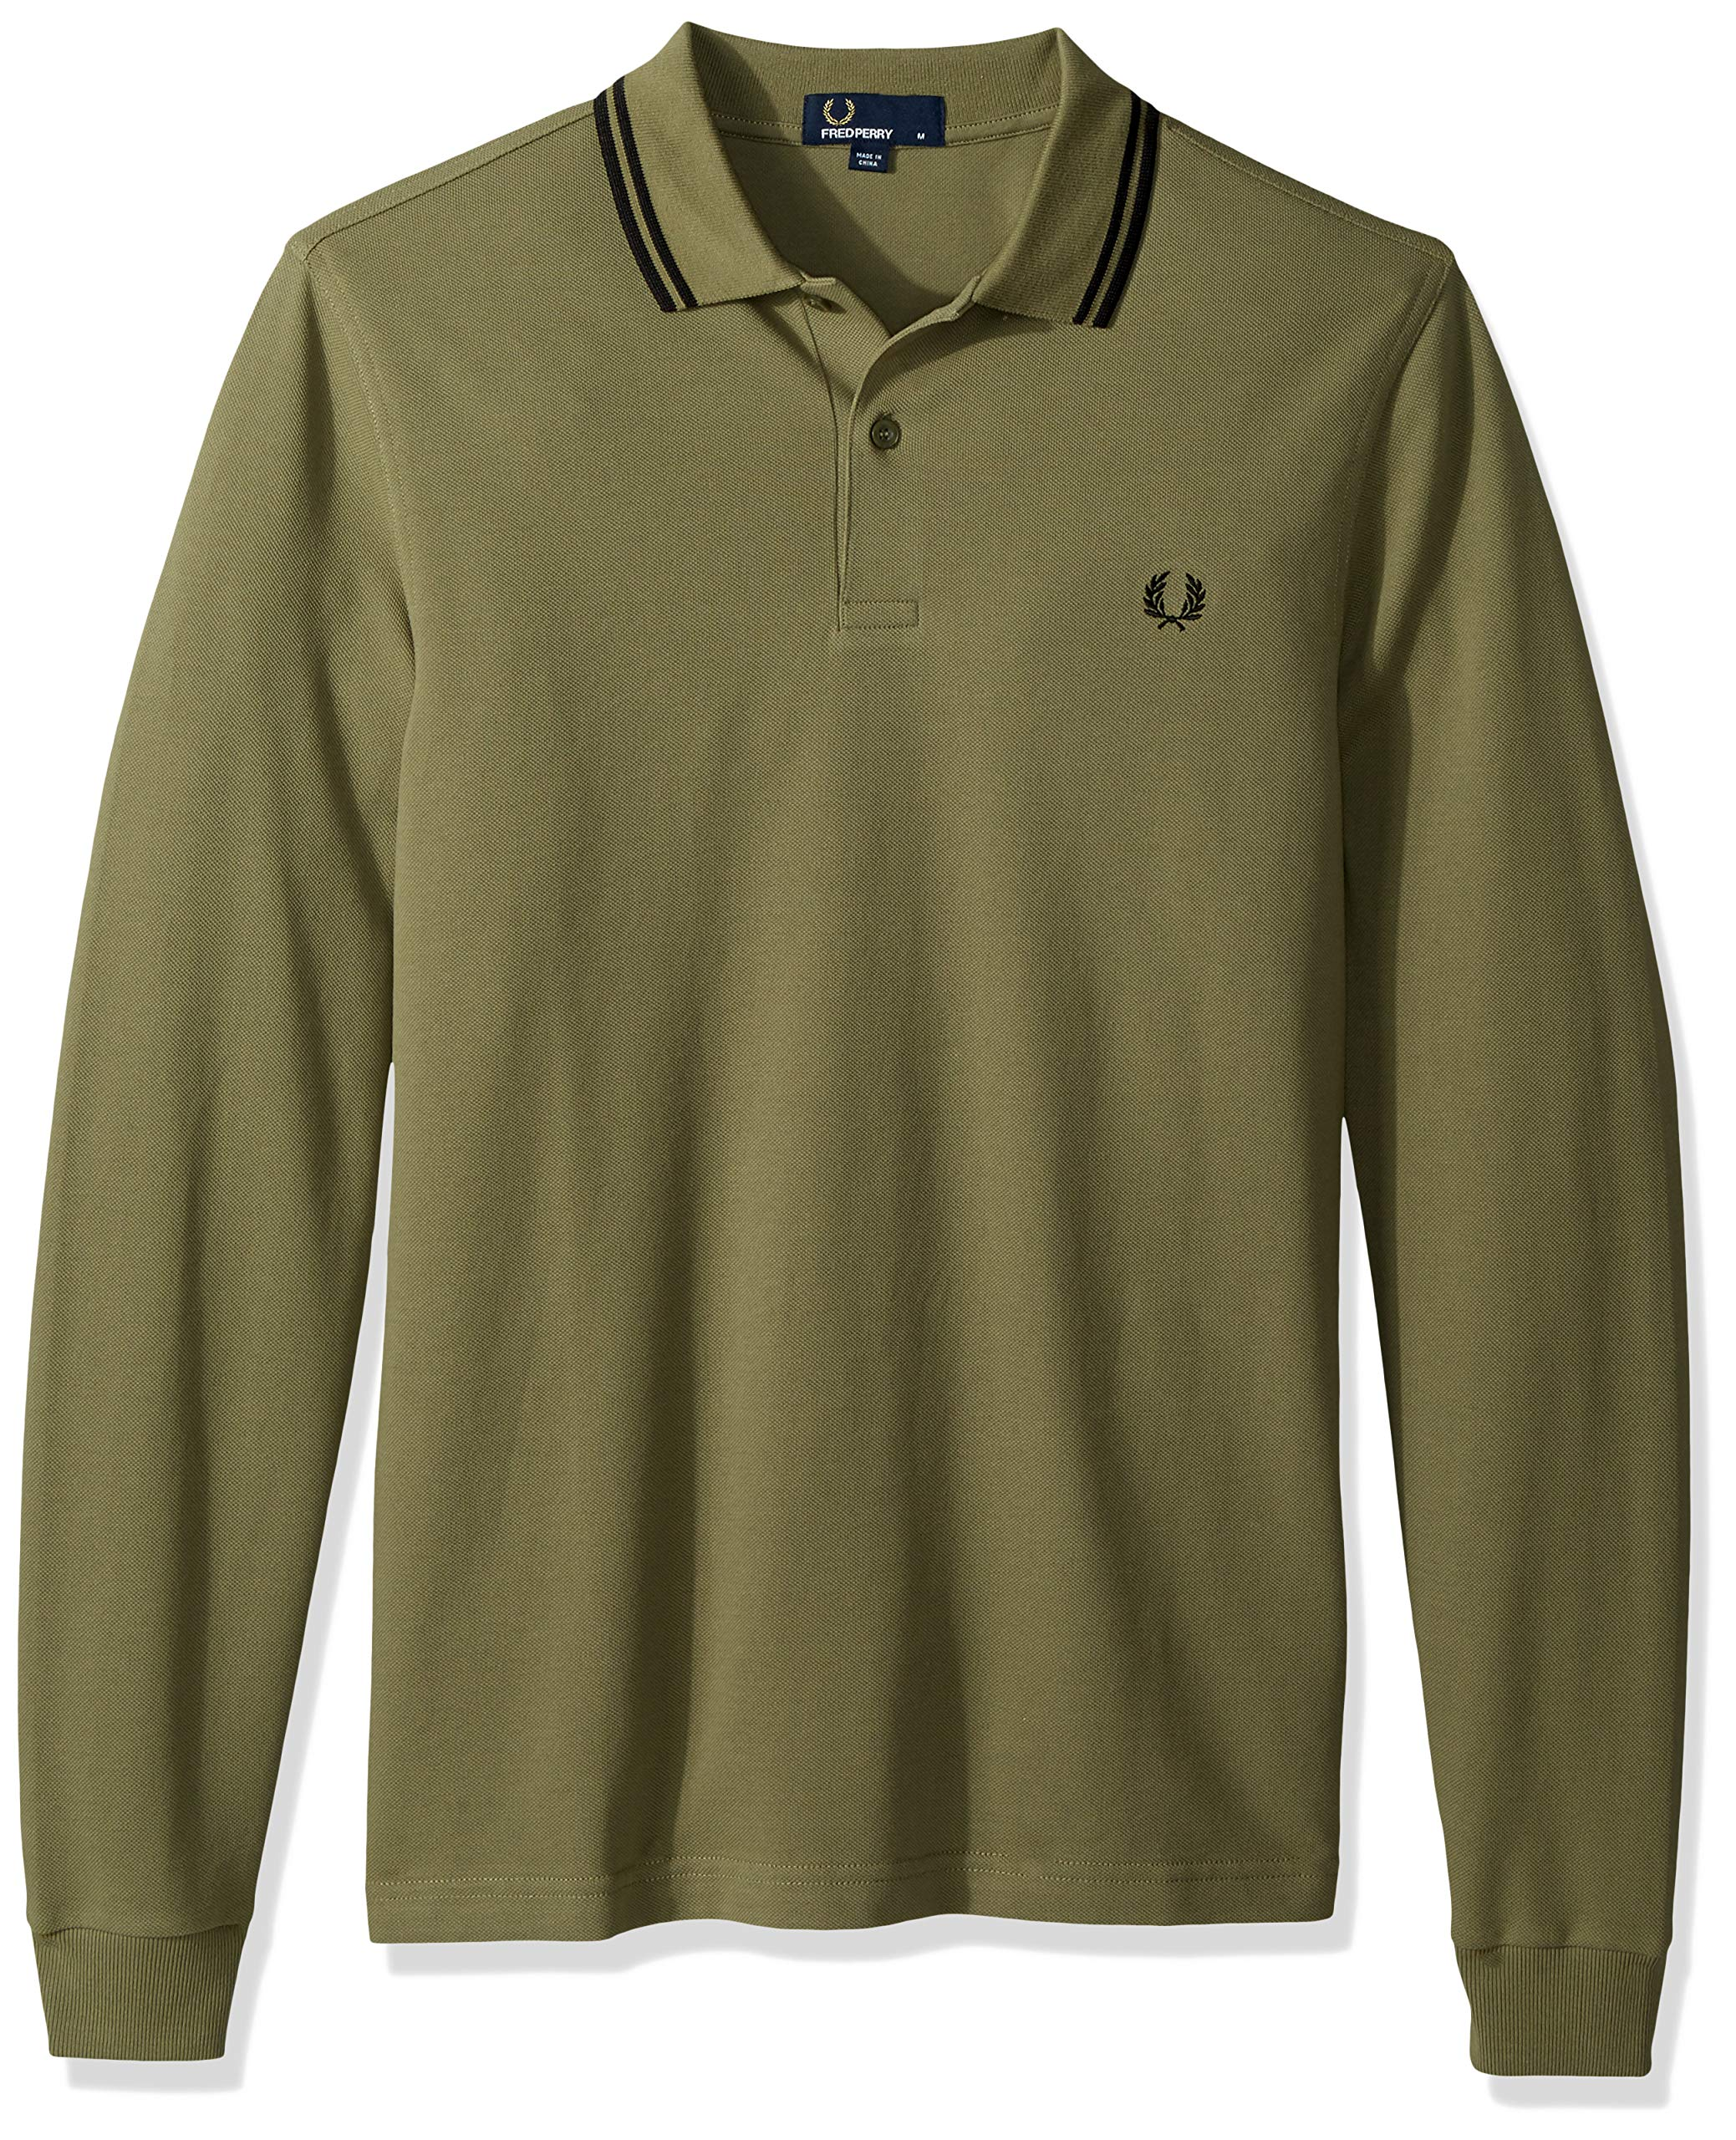 Fred Perry Men's Long Sleeve Twin Tipped Shirt, Olive/Black, X-Large